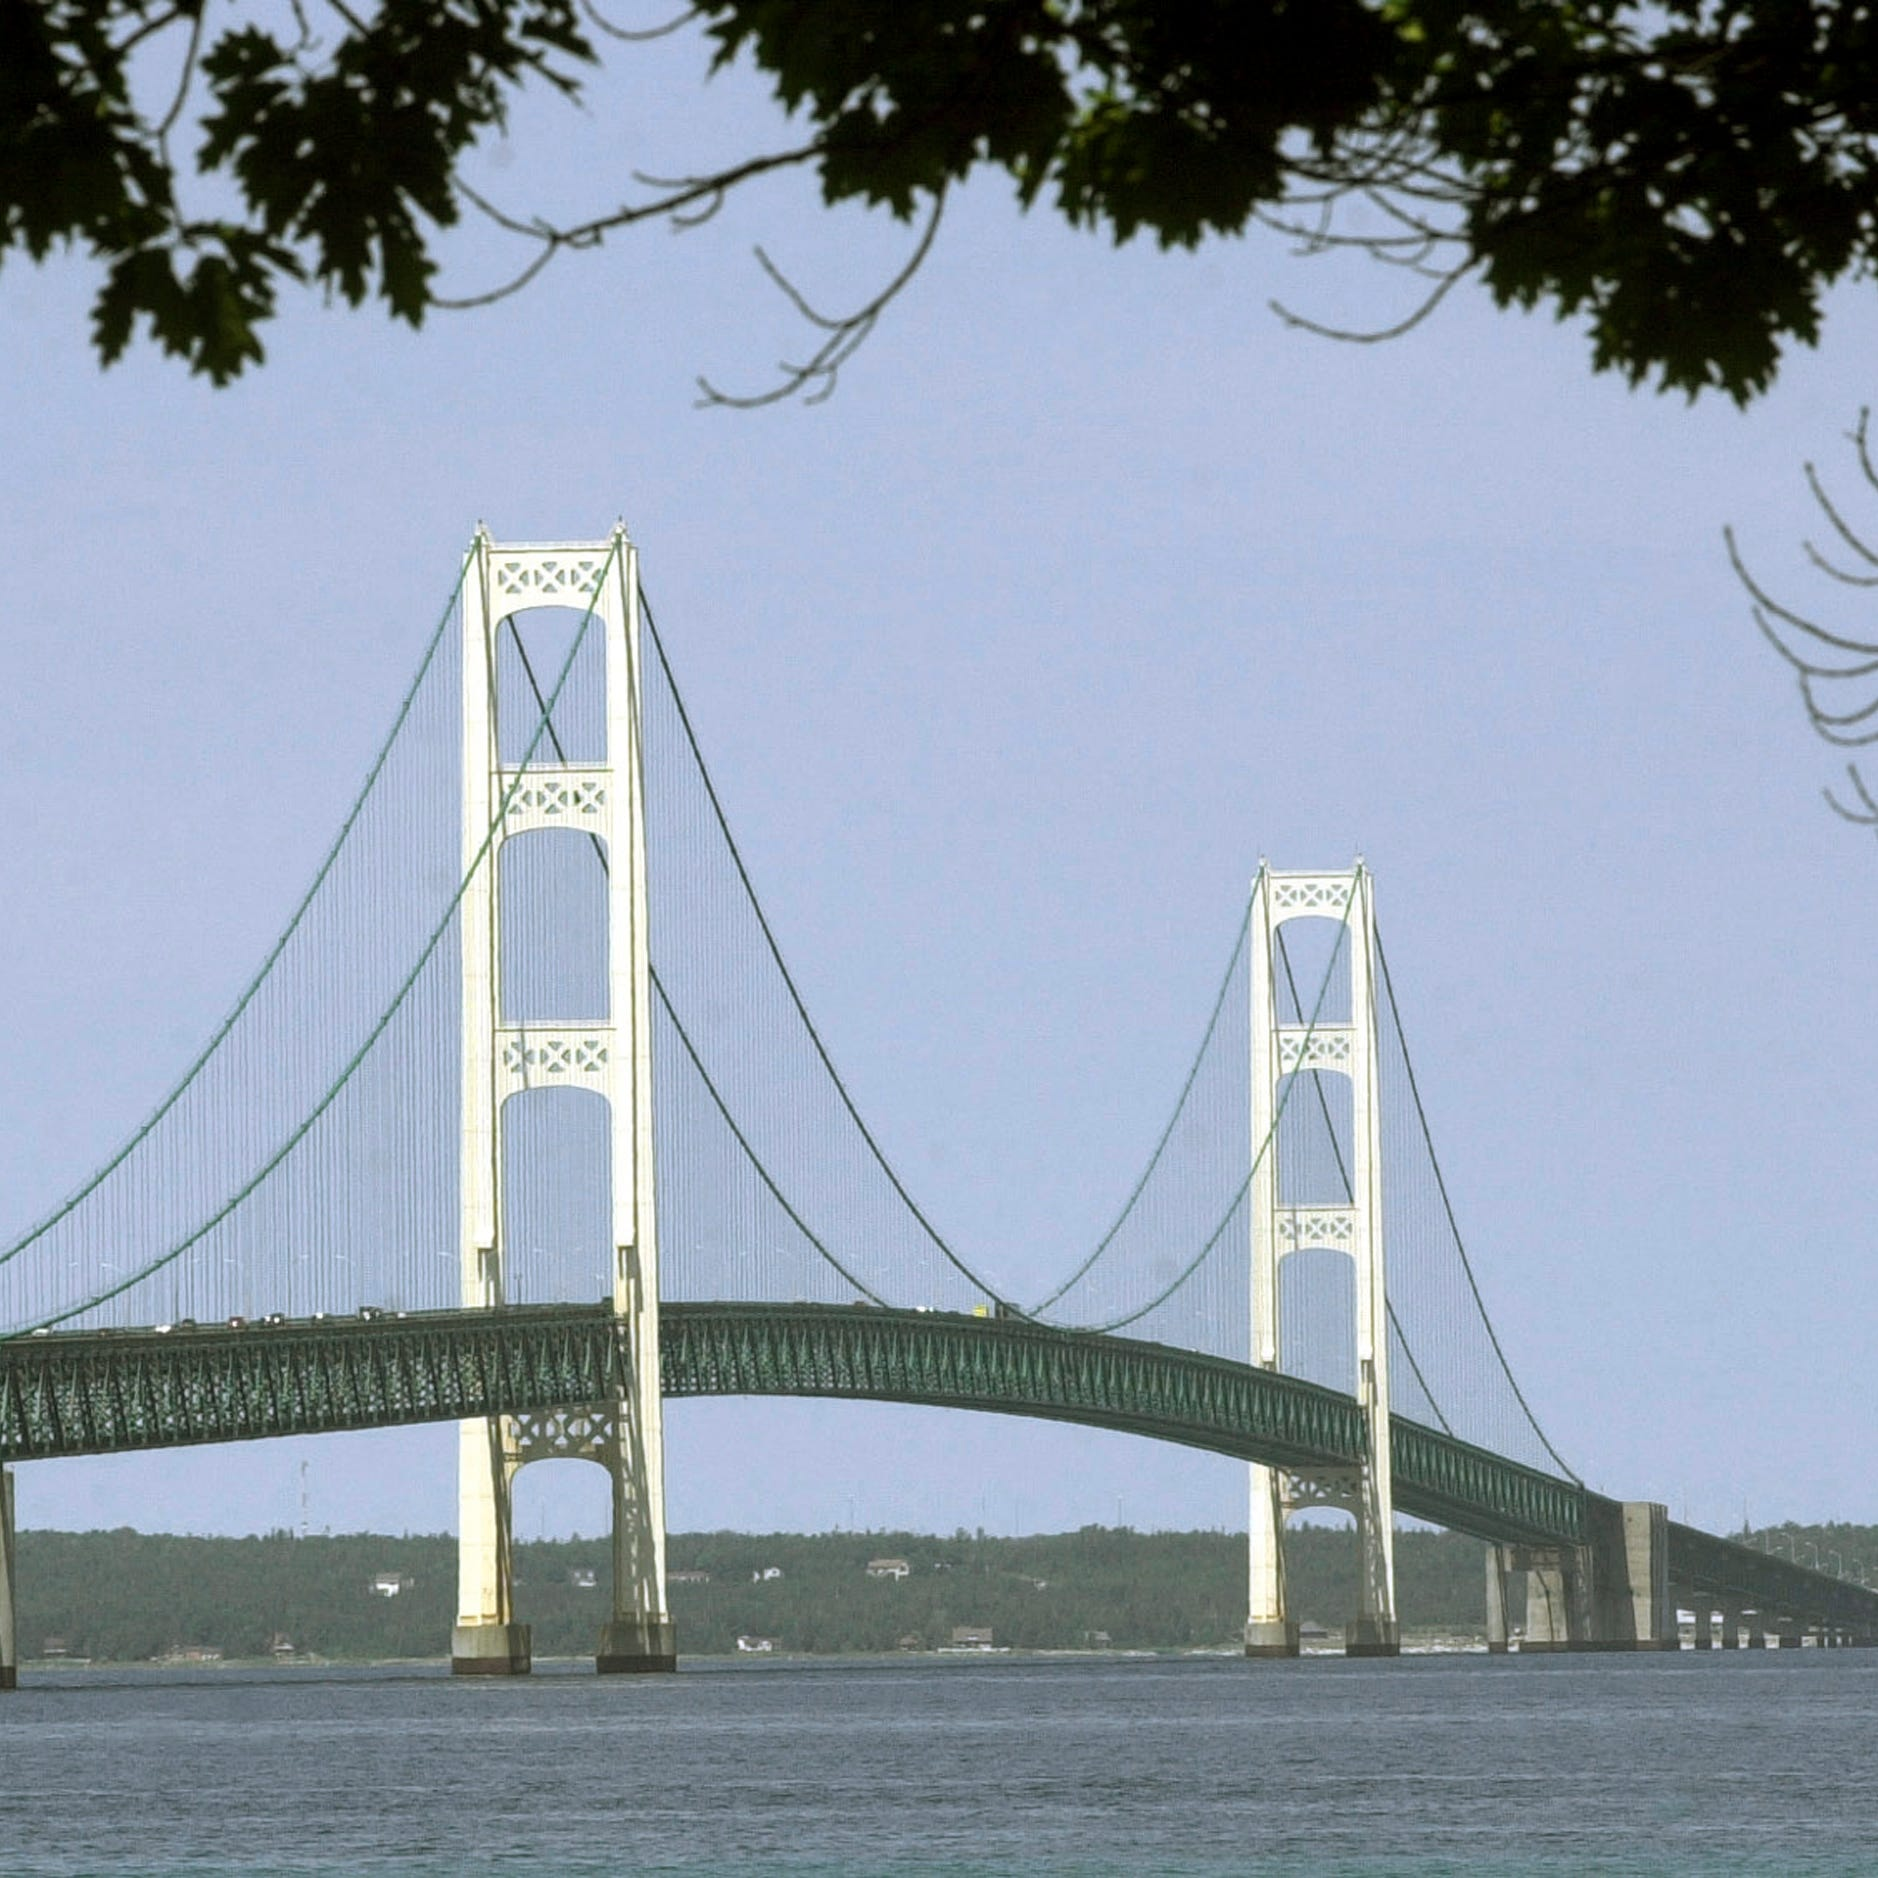 Strong winds blow through Michigan, shut Mackinac Bridge